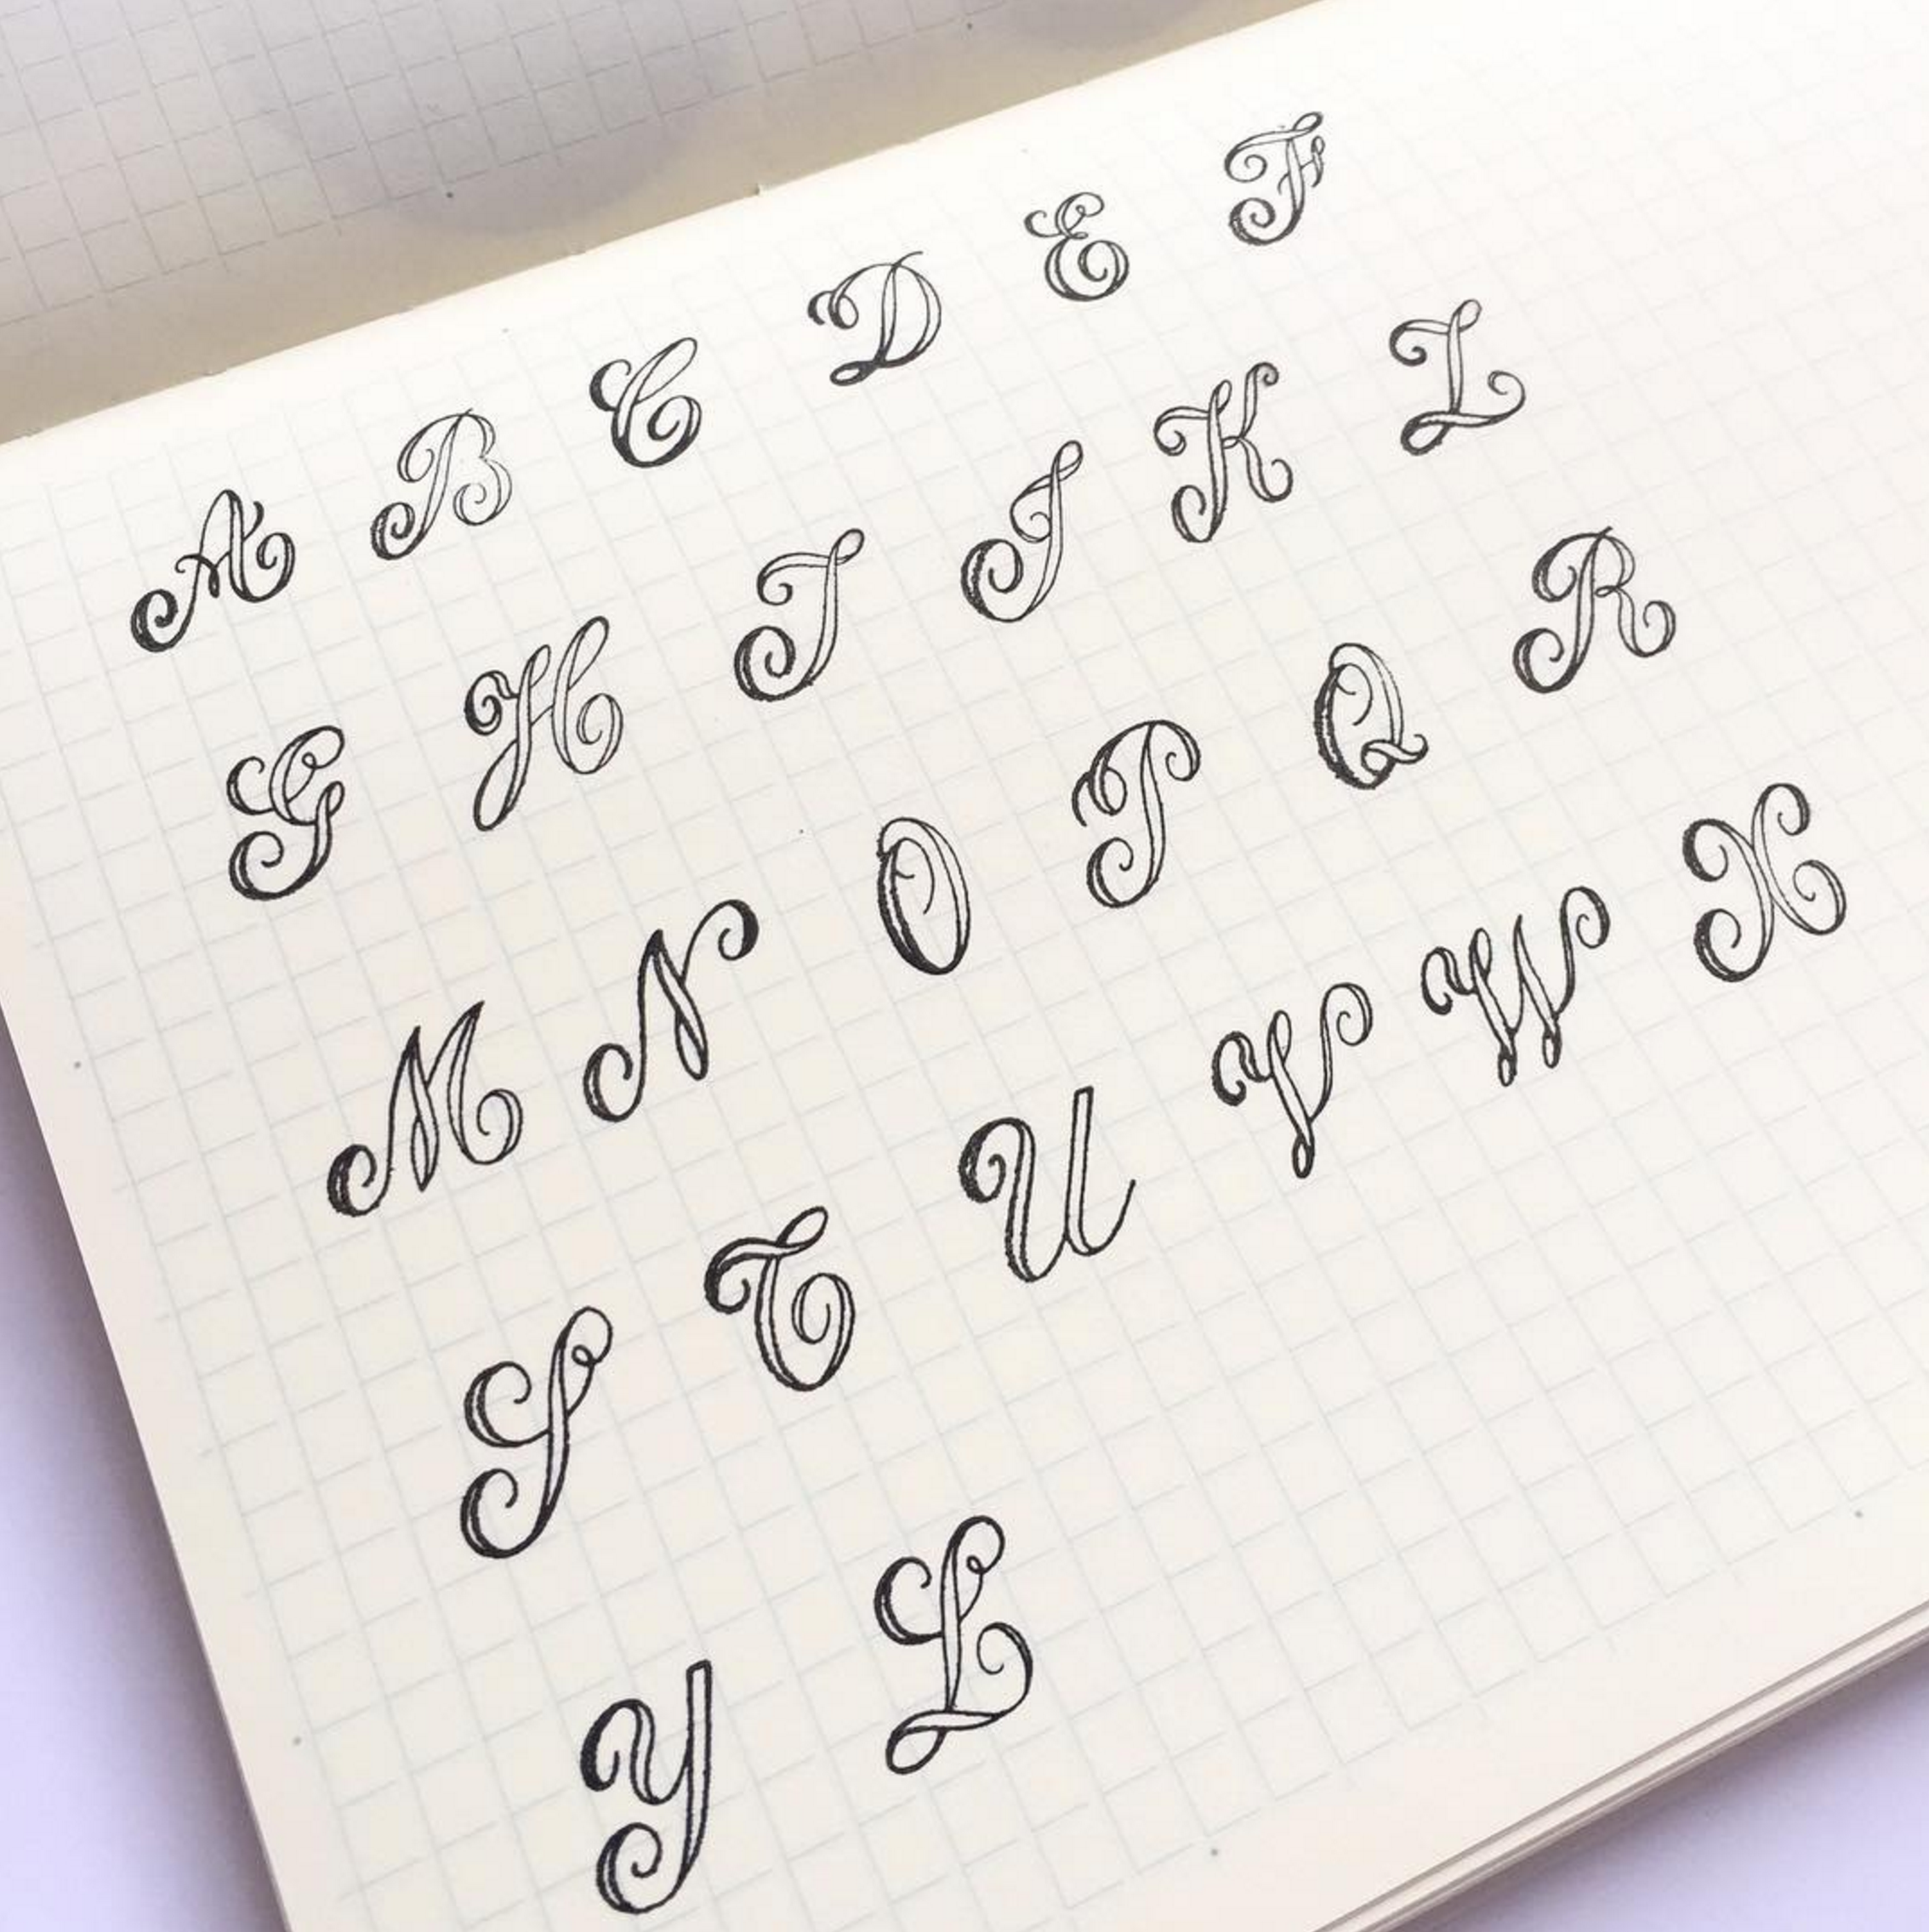 Beautiful letter form inspiration from  @sumthingsofmine